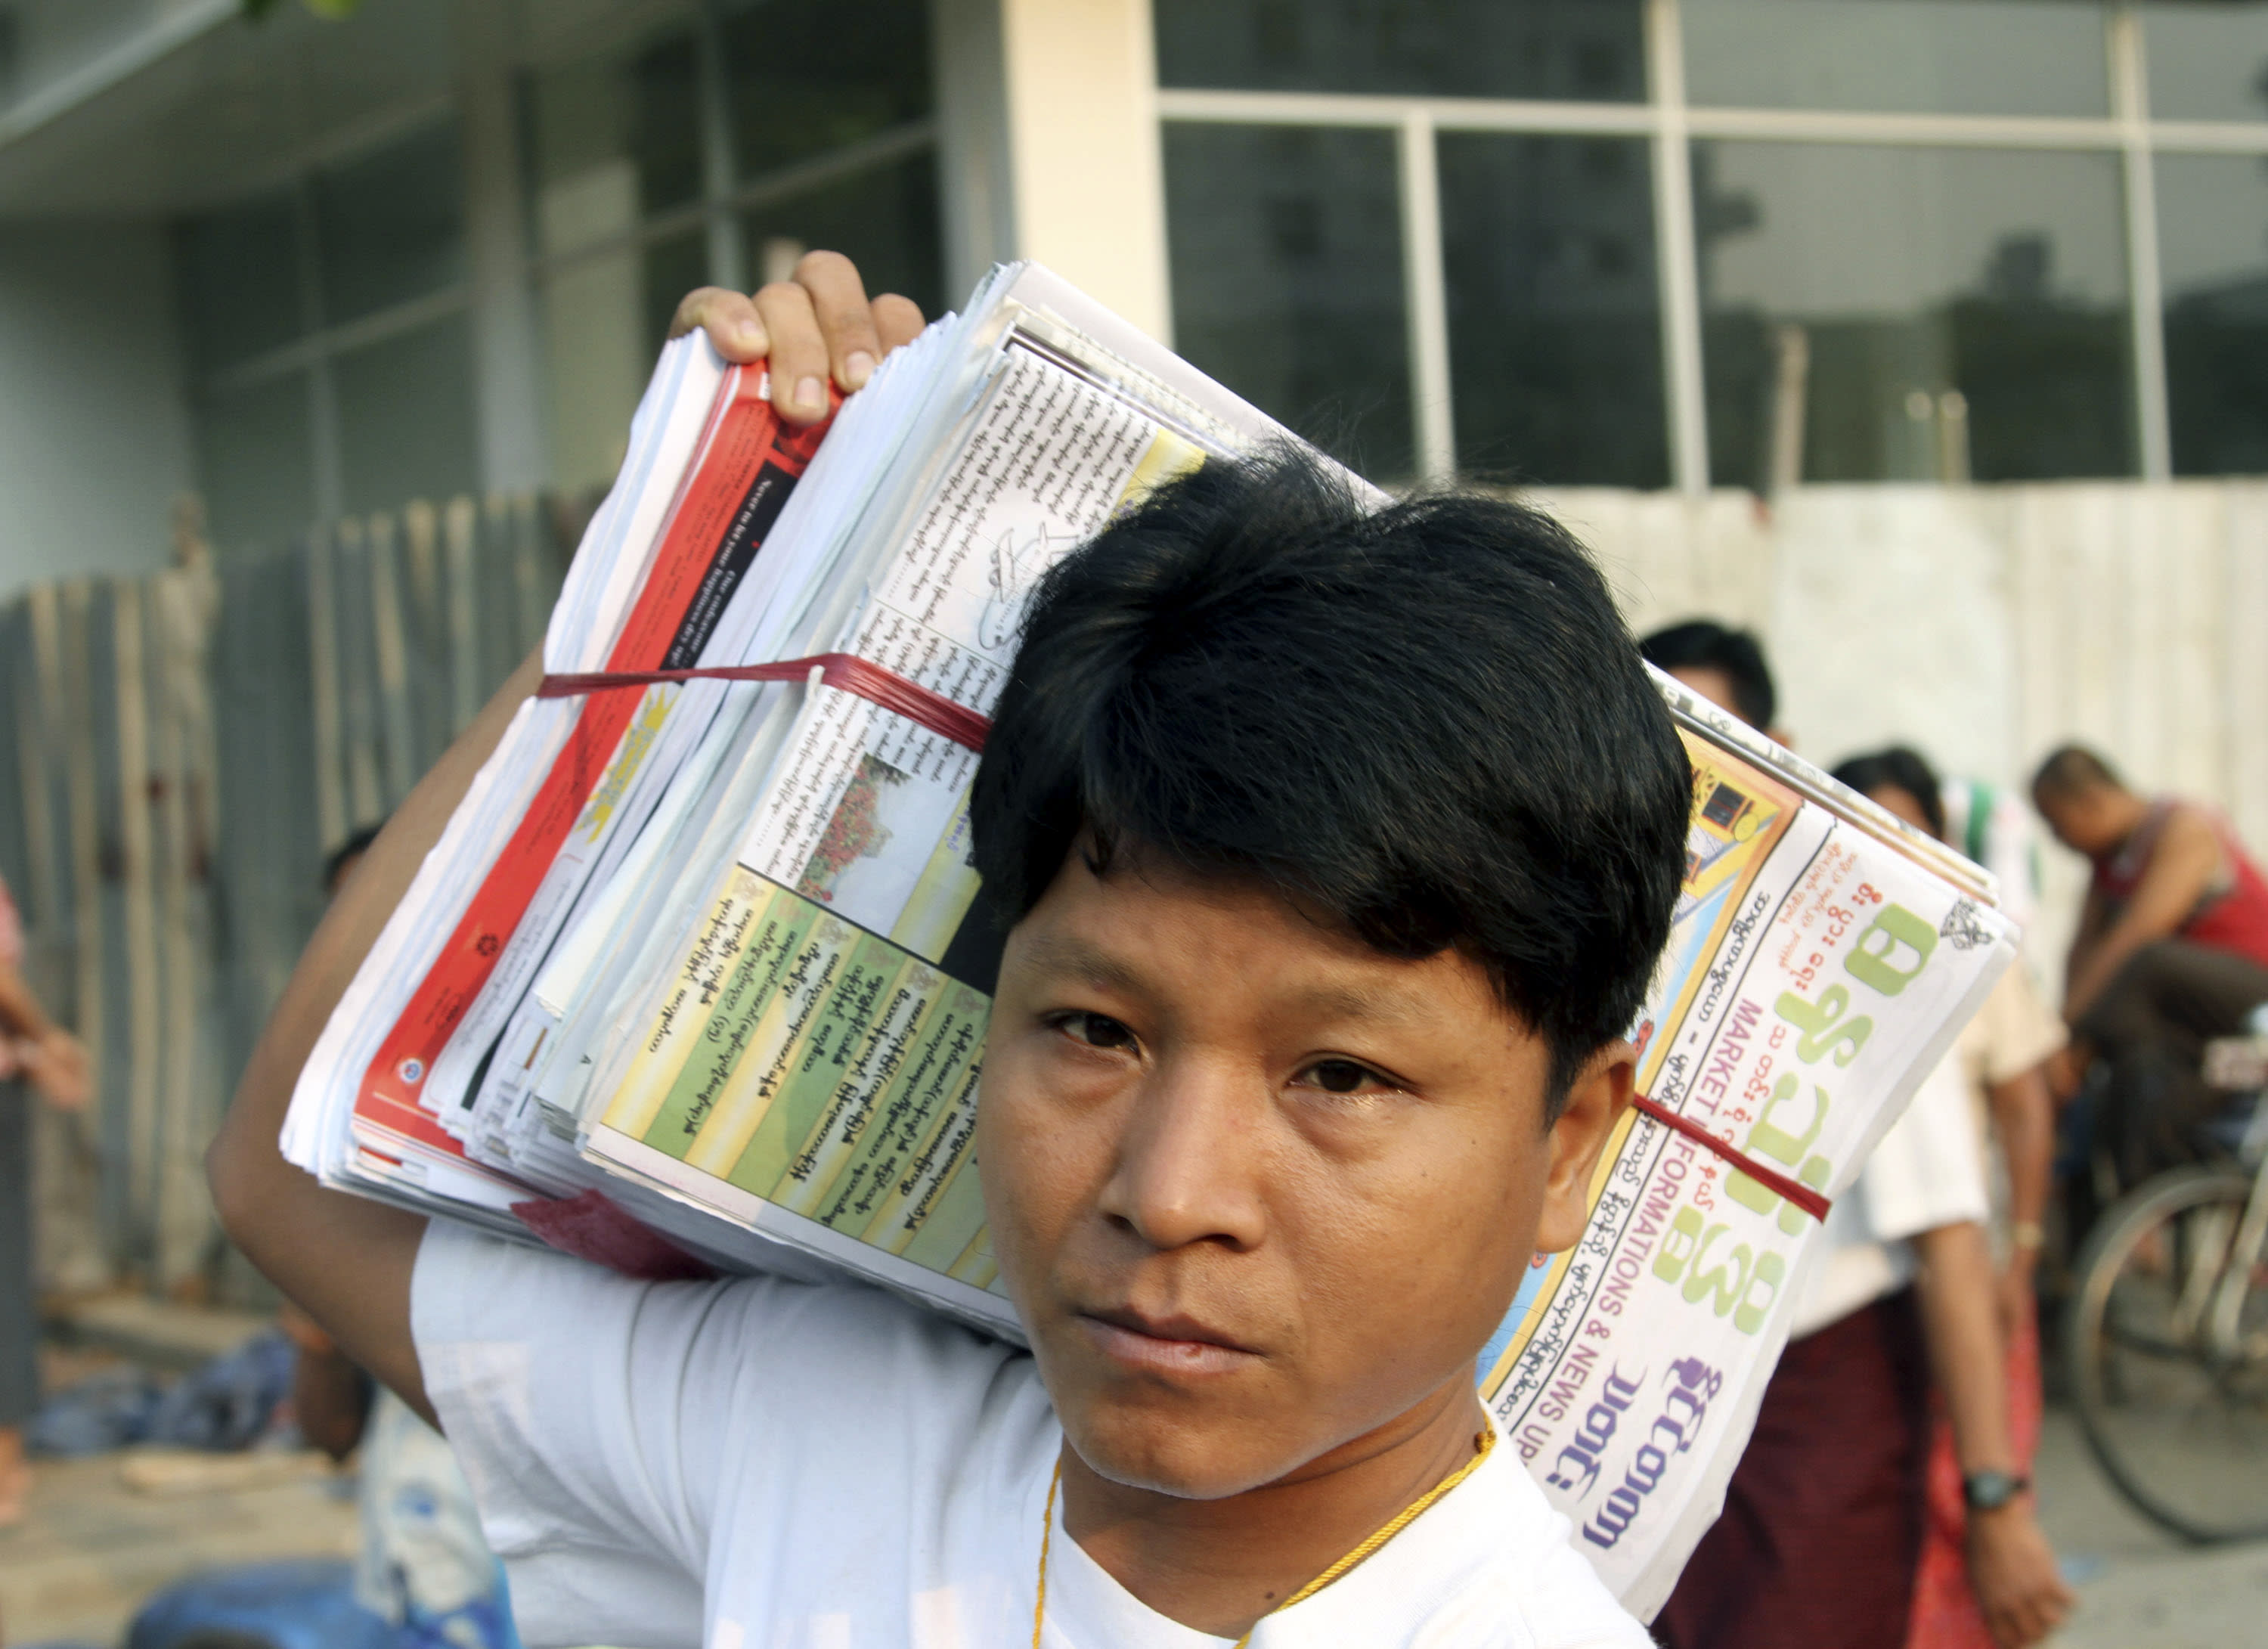 A man carries daily newspapers on his shoulder to sell at his roadside shop Monday, April 1, 2013, in Yangon, Myanmar. For most people in Myanmar, it will be a novelty when privately run daily newspapers hit the streets on Monday. Many weren't even born when the late dictator Ne Win imposed a state monopoly on the daily press in the 1960s. (AP Photo/Khin Maung Win)